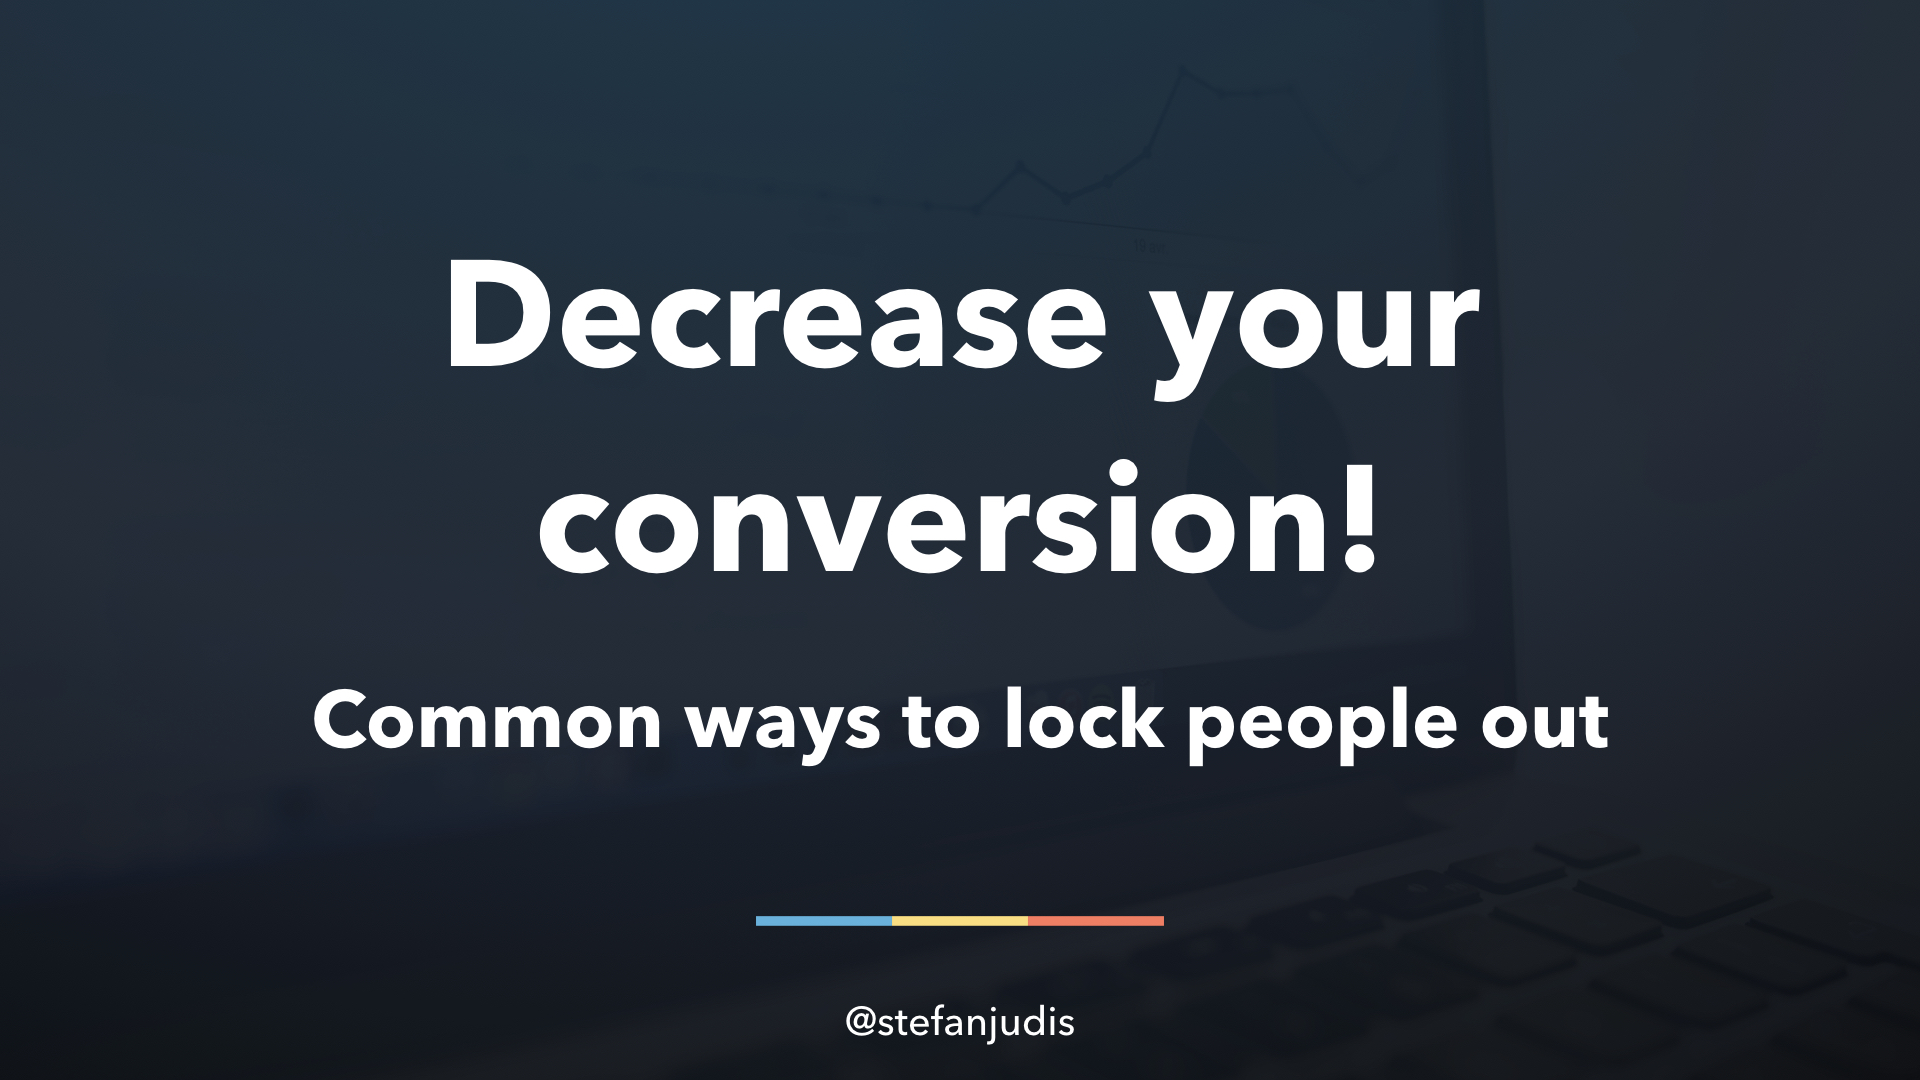 Decrease your conversion - common ways to lock people out